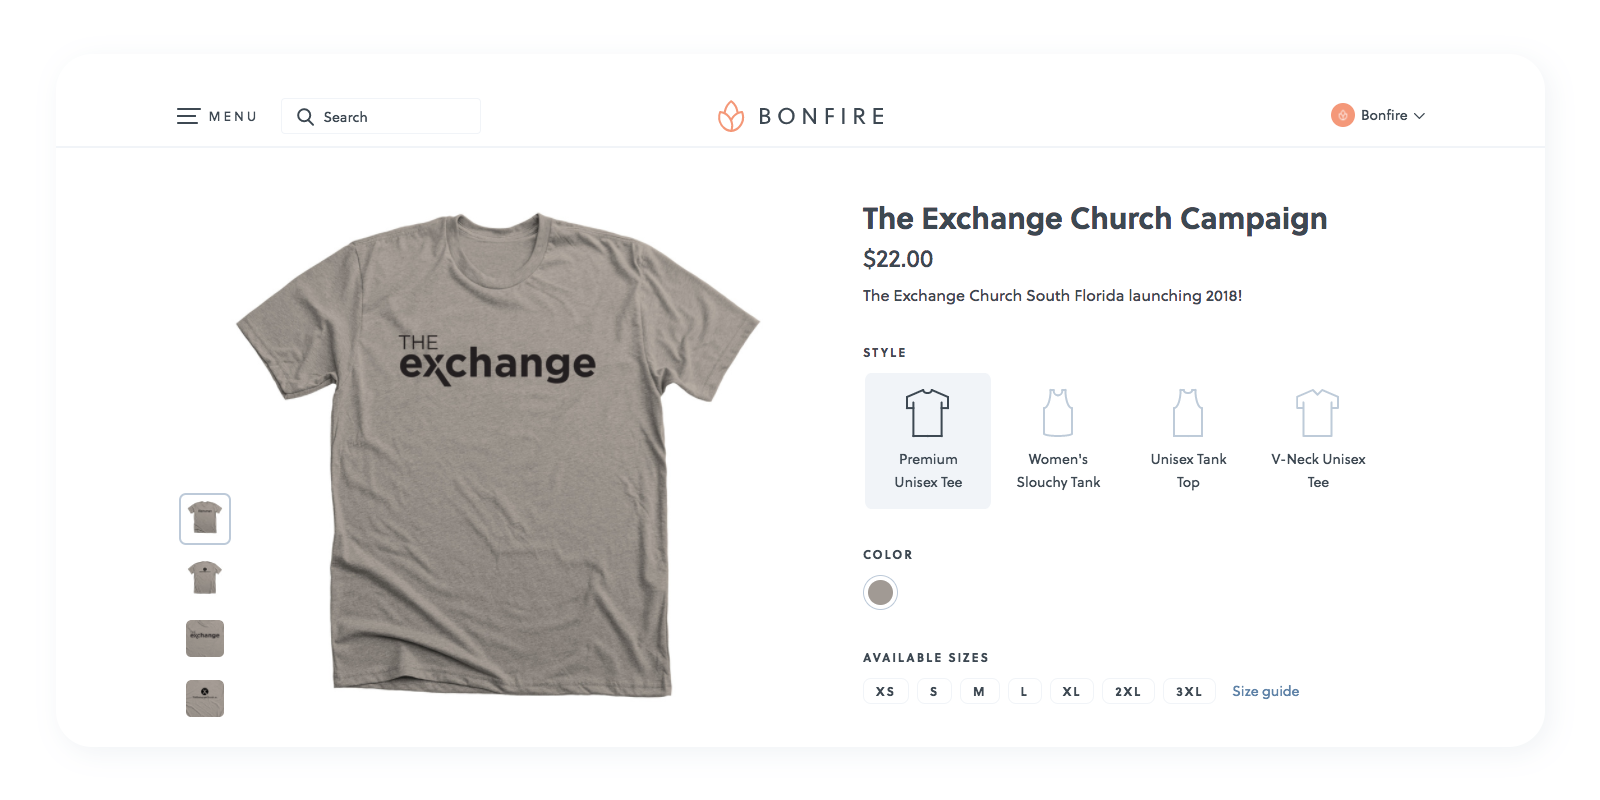 Check out how the Exchange Church used merchandise to raise money for their campaign.